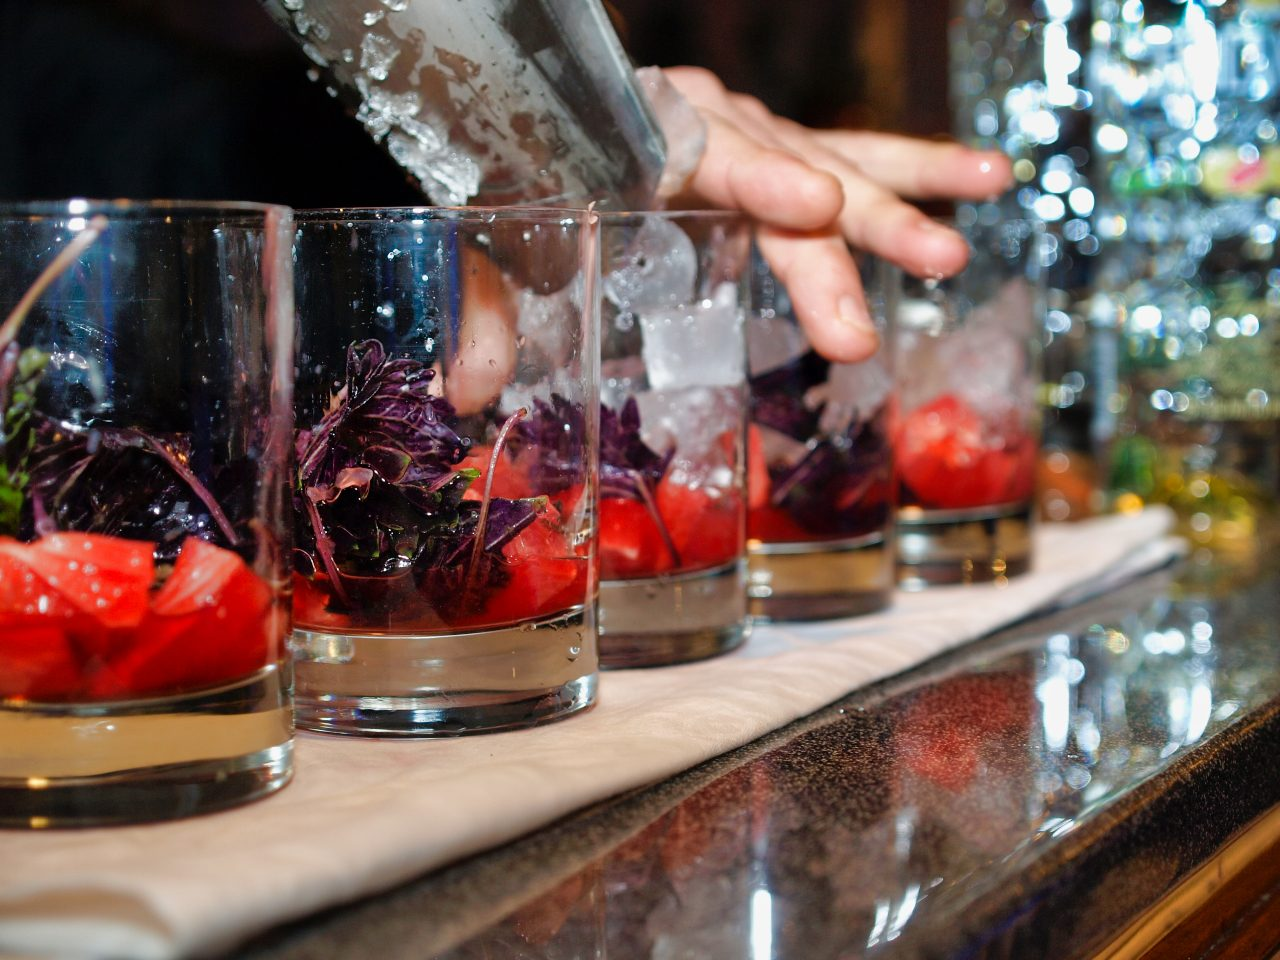 The Finlandia Cup Cocktail Competition in Colorado